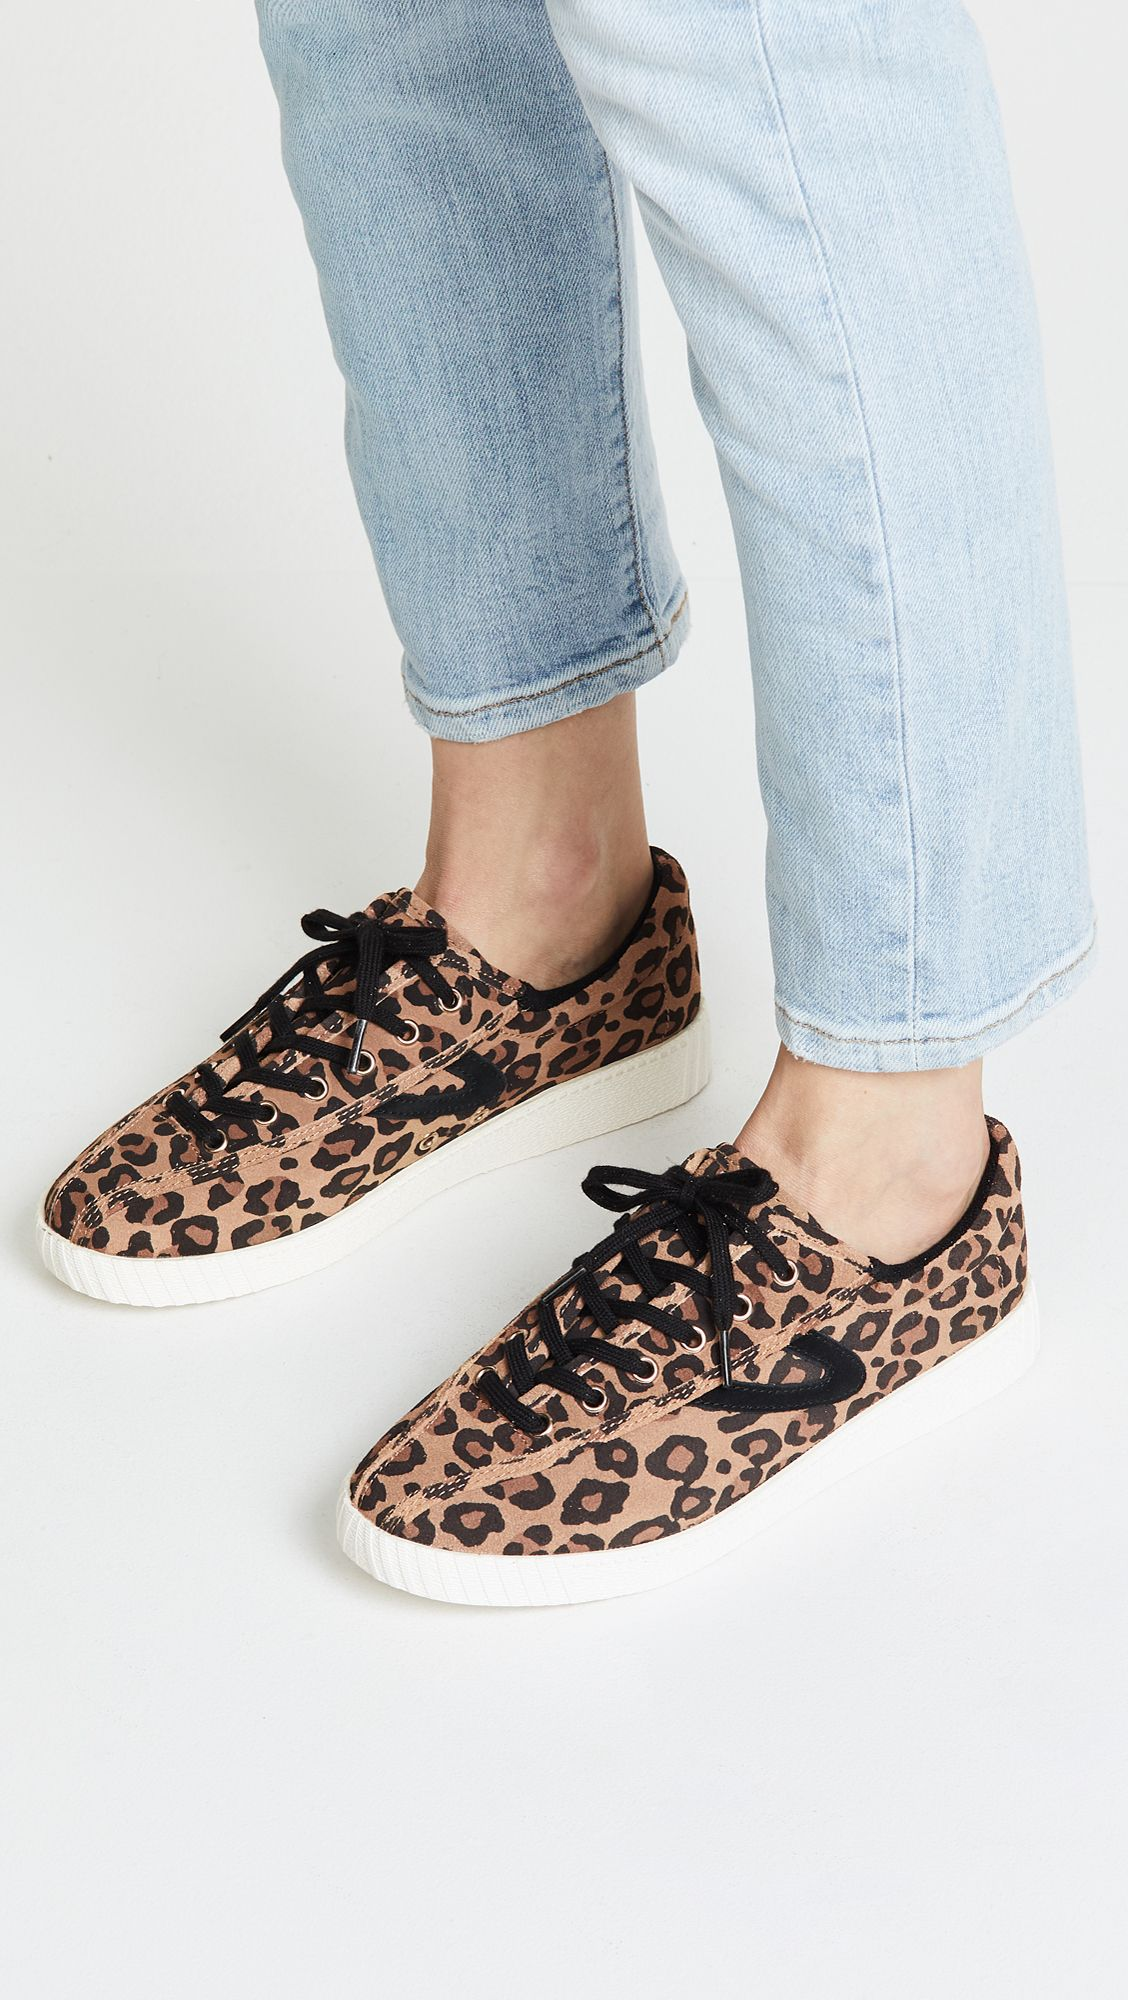 bfd651422082 Nylite Plus Lace Up Sneakers | omg shoes. | Sneakers, Tretorn shoes ...